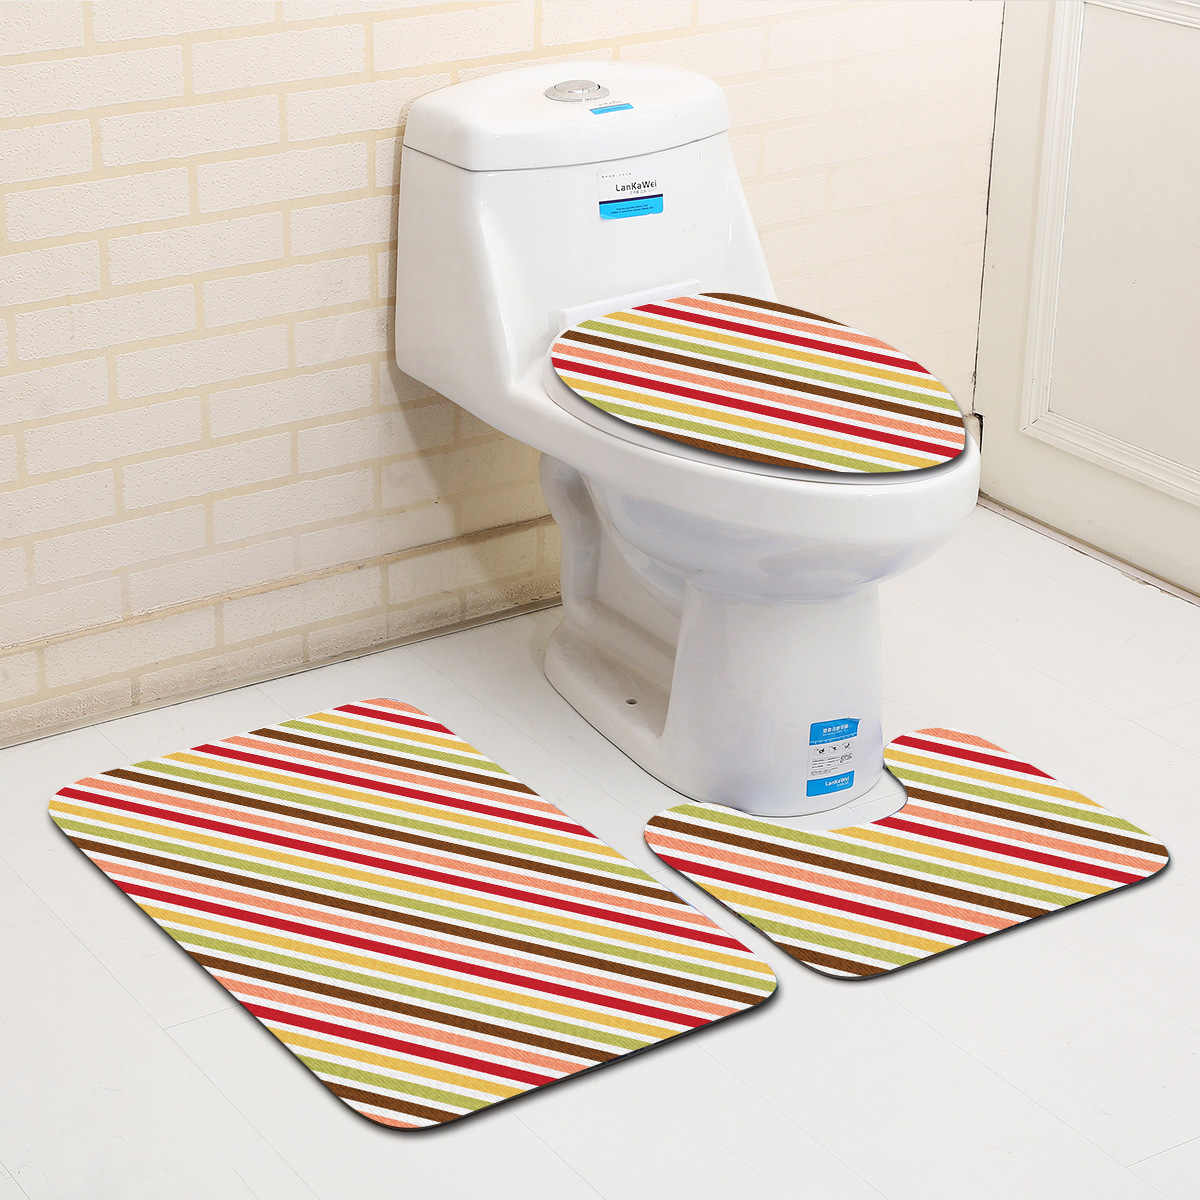 Brilliant Zeegle Shading 3Pcs Bathroom Carpet Set Toilet Lid Cover Non Slip Bathroom Floor Mats Washroom Rugs Toilet Bath Mat Set Bath Rug Gmtry Best Dining Table And Chair Ideas Images Gmtryco